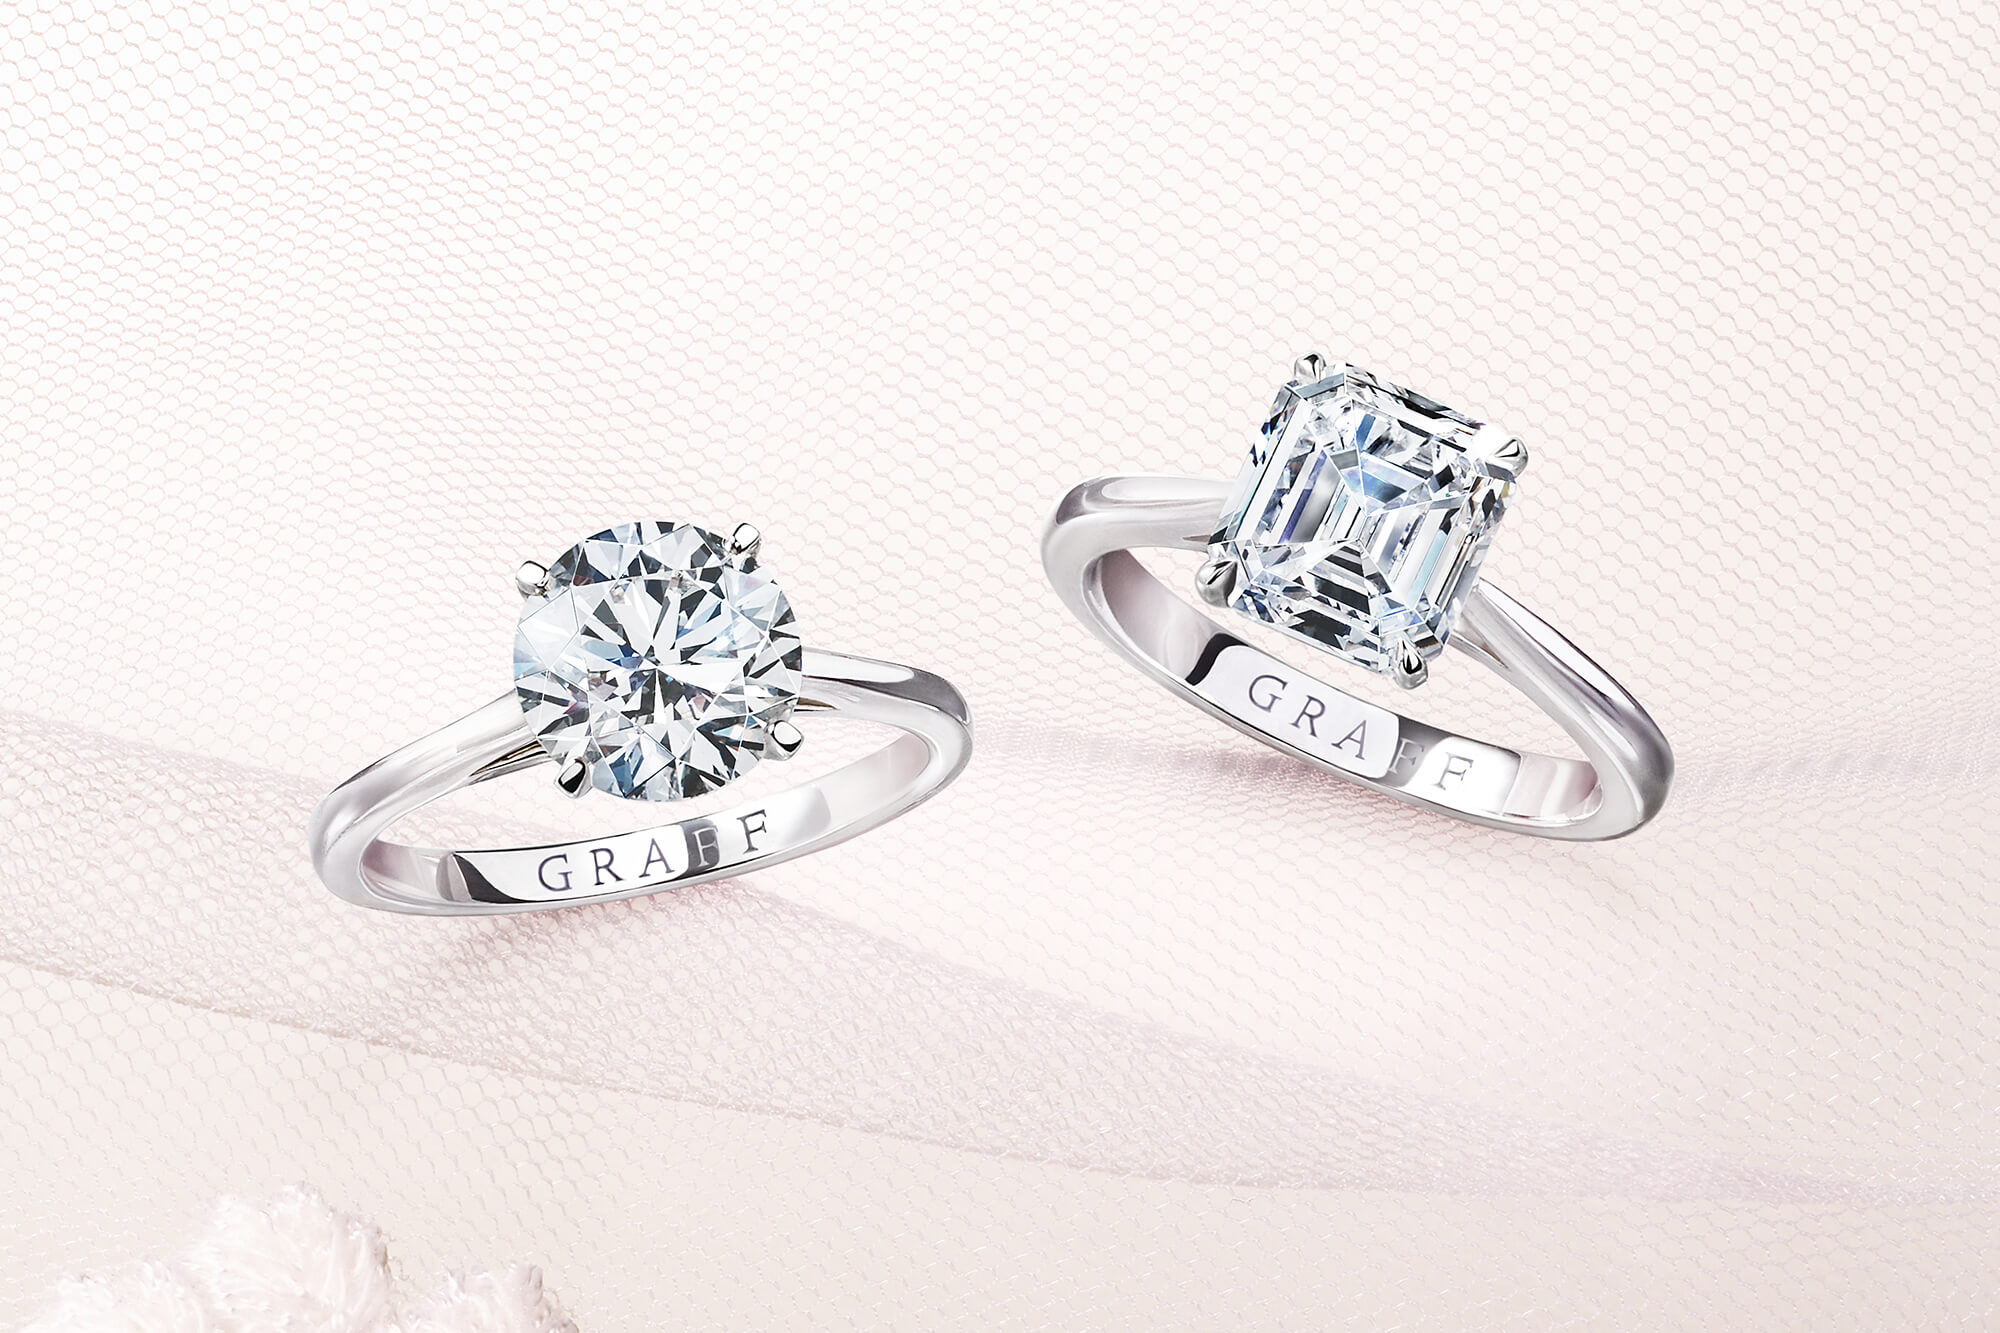 Paragon Round Diamond Engagement Ring and Paragon Emerald Cut Diamond Engagement Ring from the Graff bridal jewellery collection